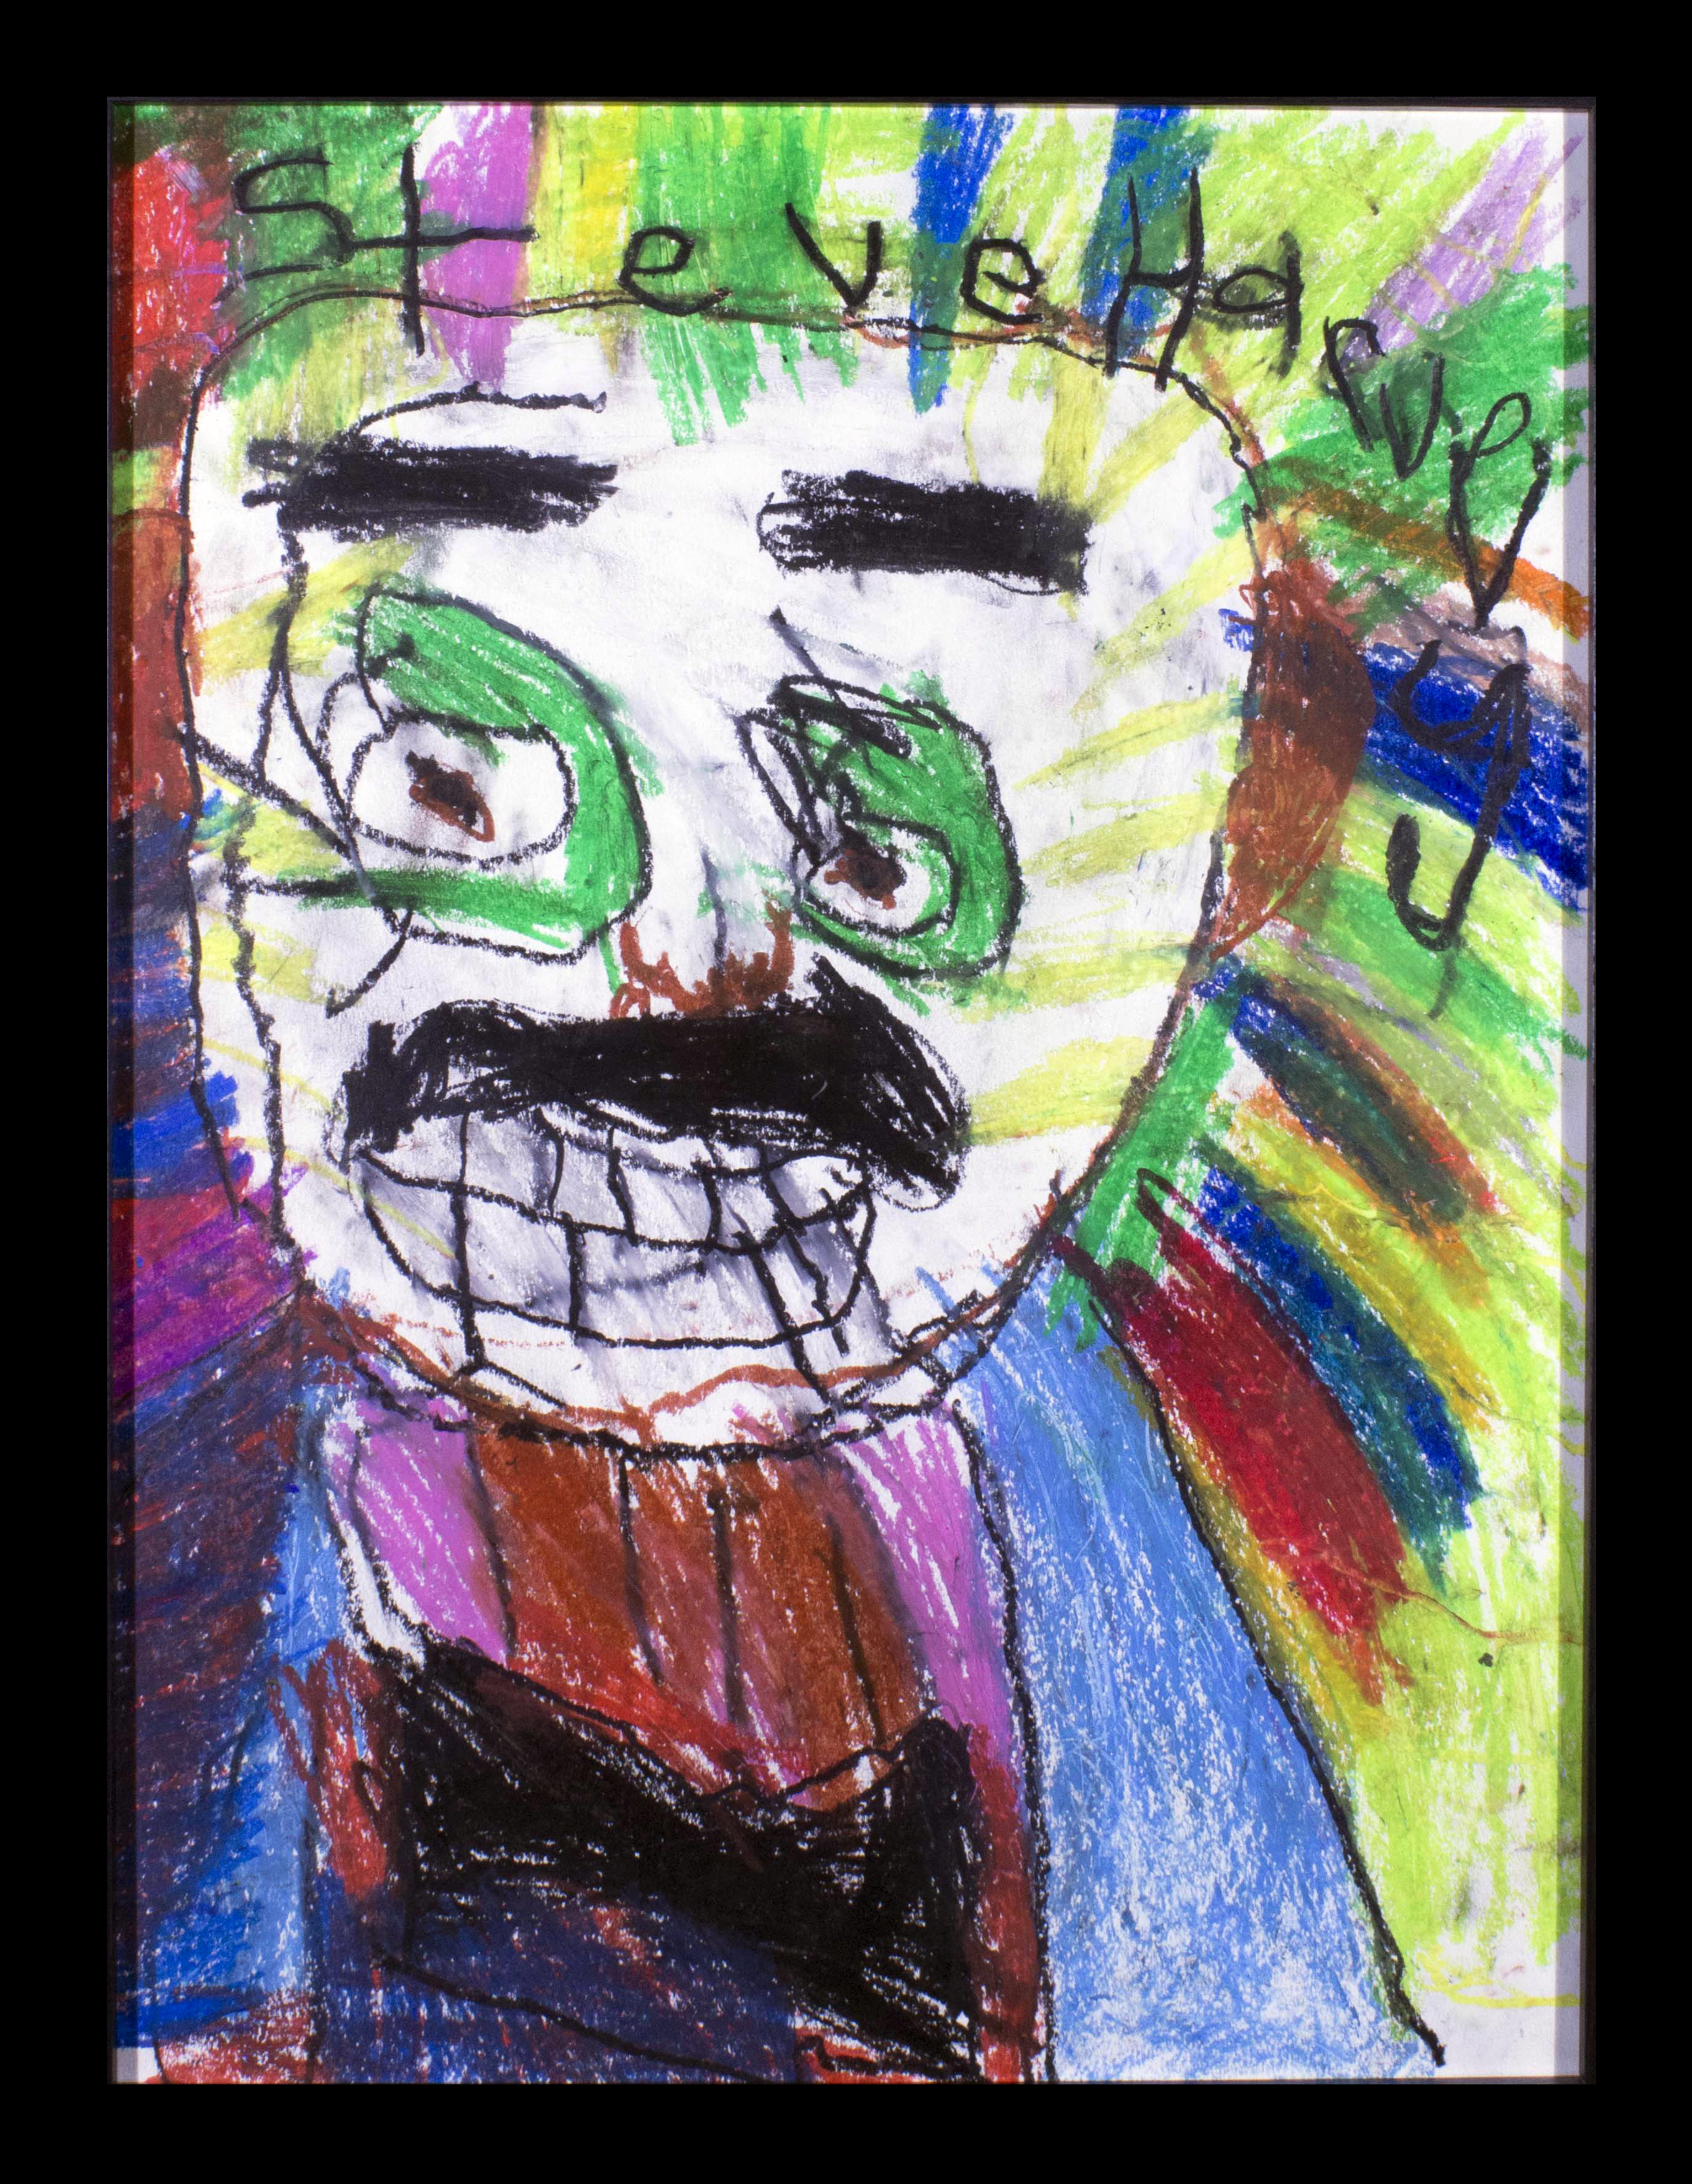 "The Great Steve Harvey . Oil pastel on cold press watercolor paper. 18"" x 24"" framed."